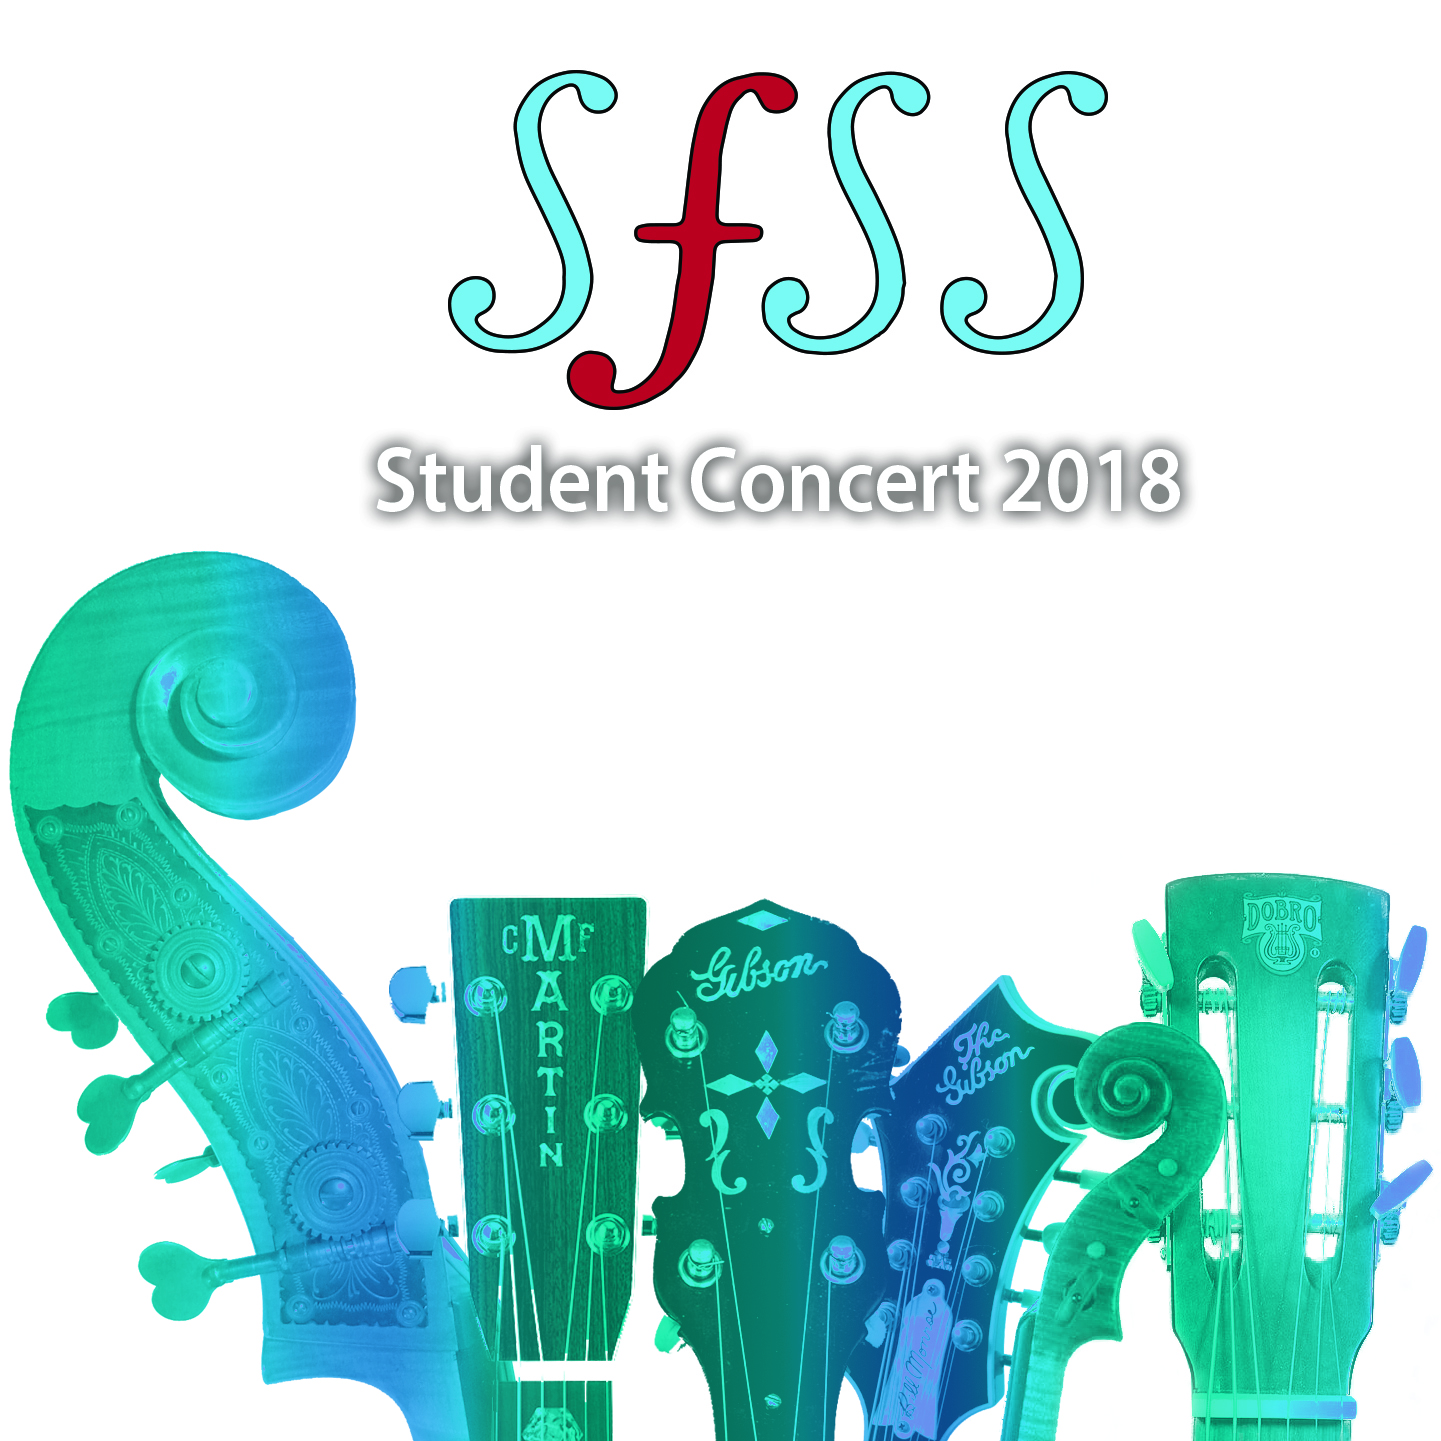 Artist:   Sore Fingers Summer Schools   Title:  Student Concert 2018  Credit:  Recording, Mixing, Mastering  Year:  2018